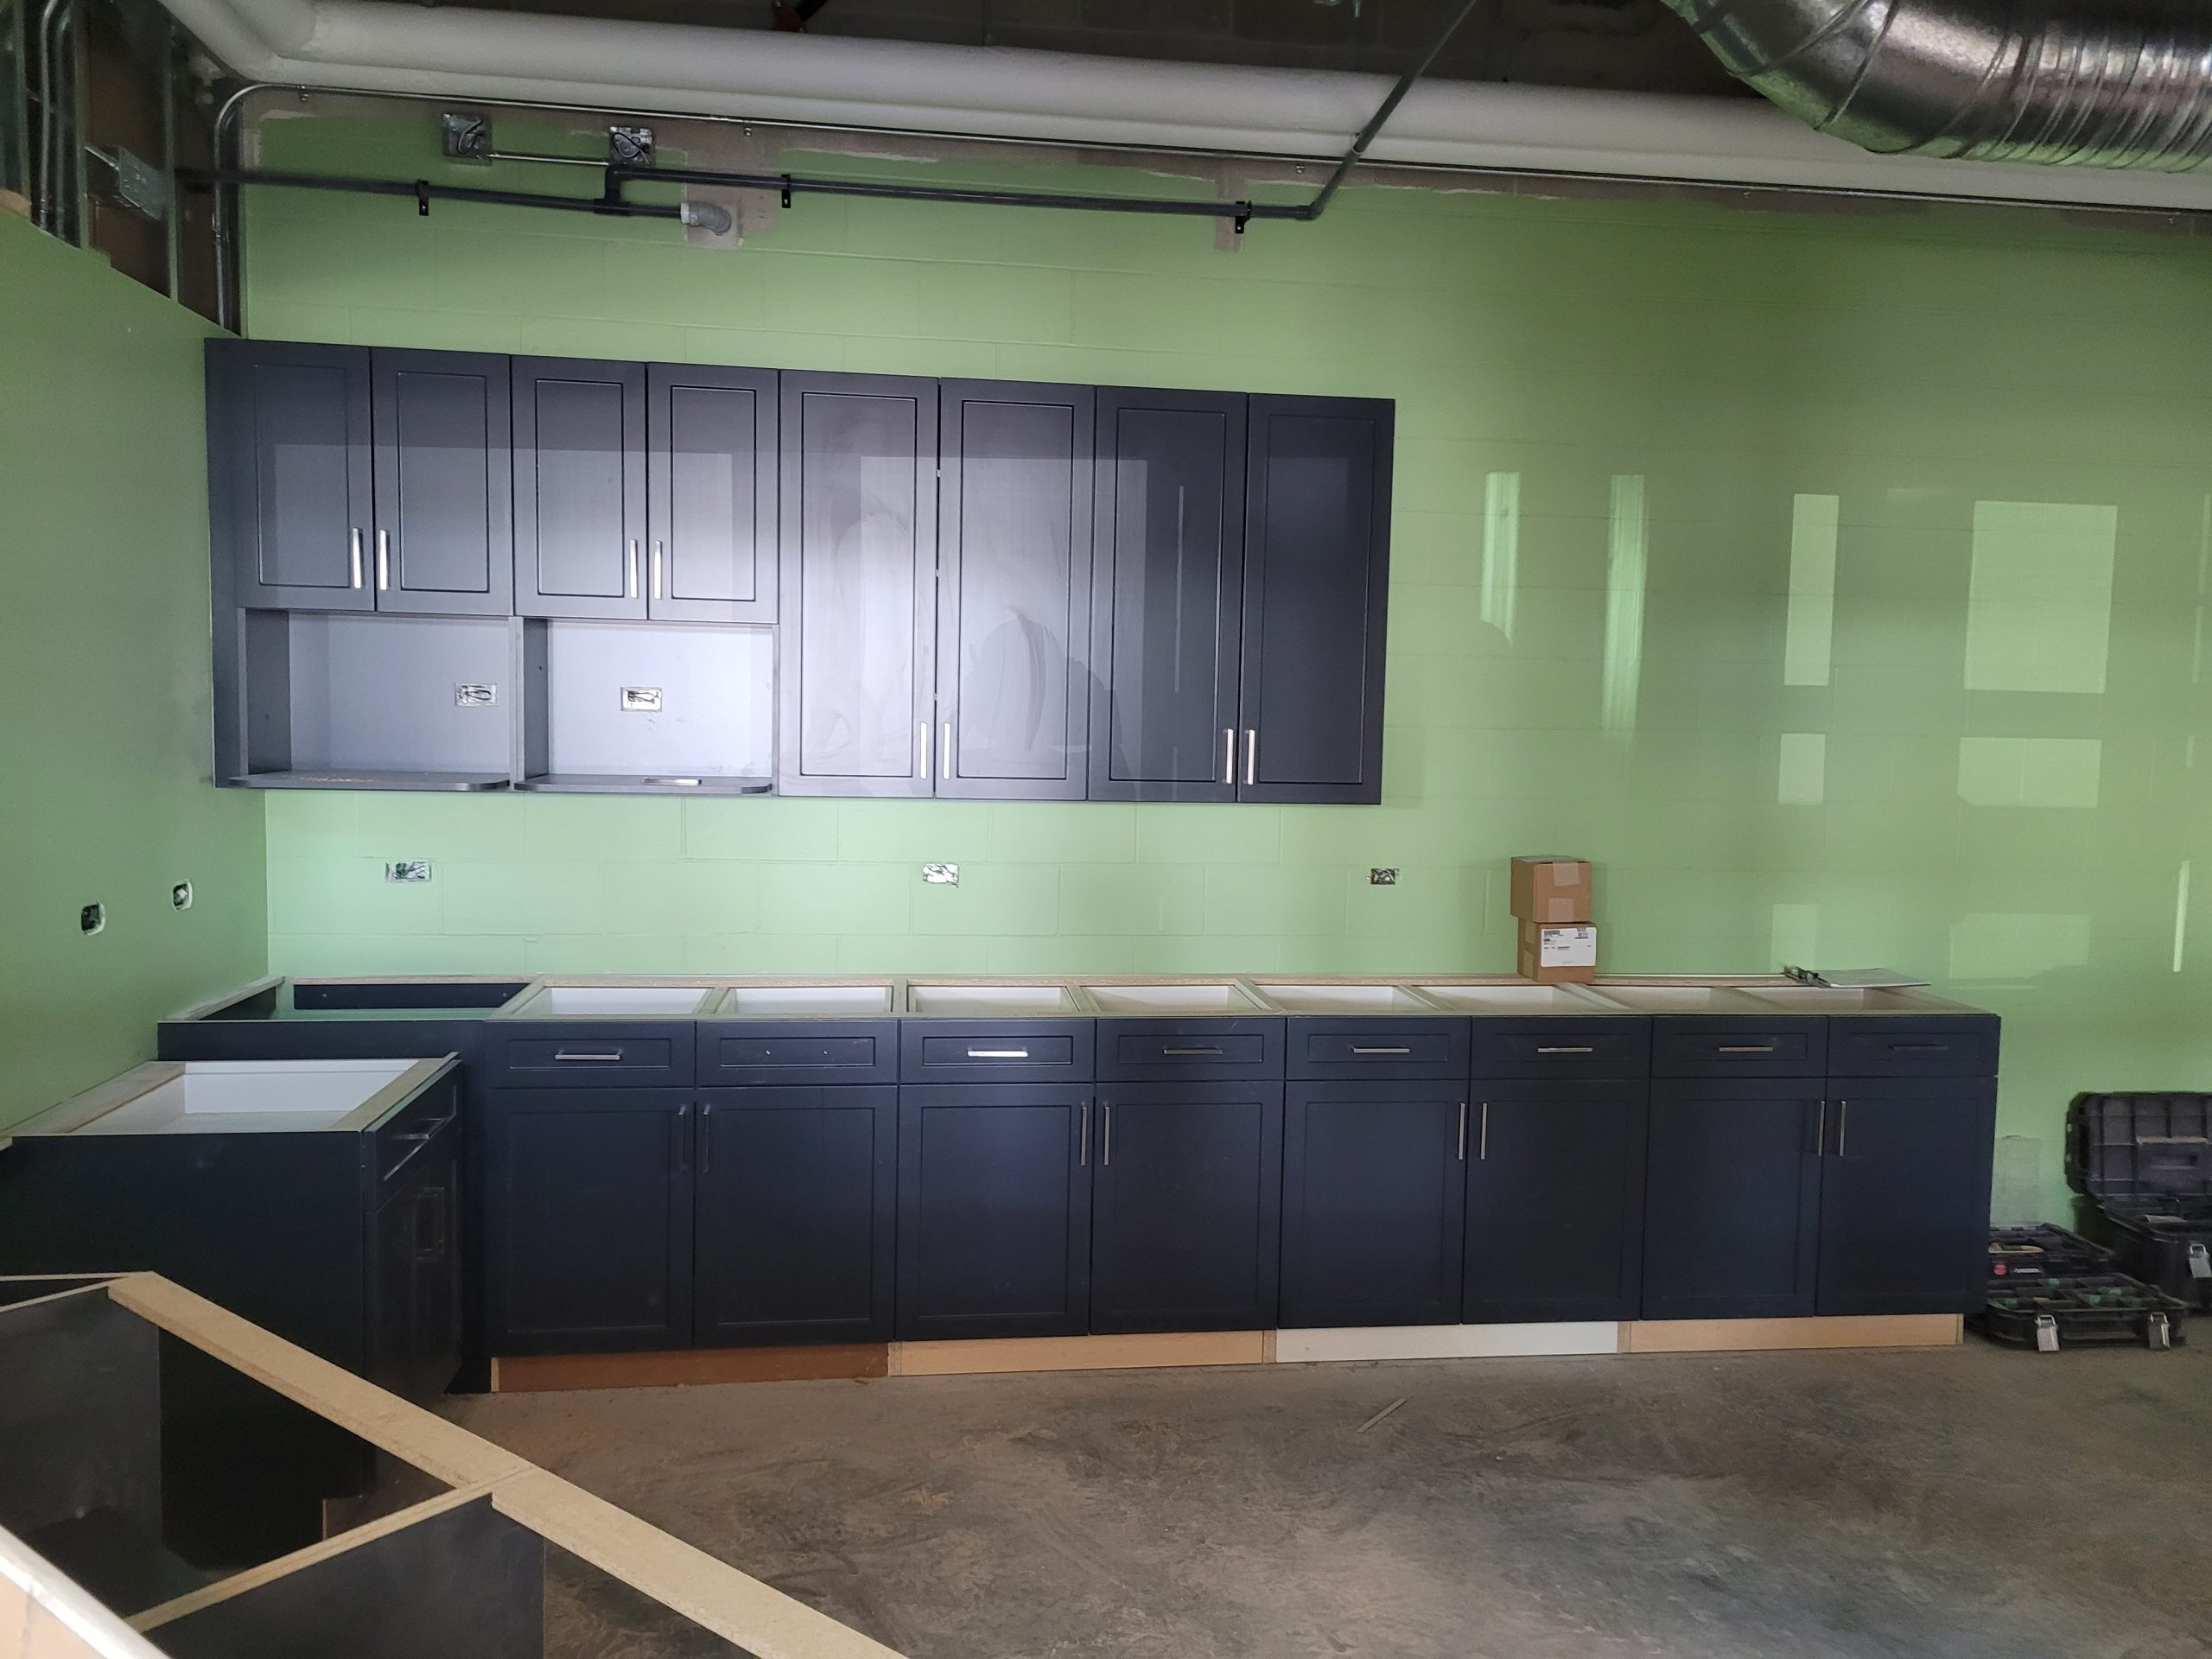 June 2021 - Canteen cupboards are in!